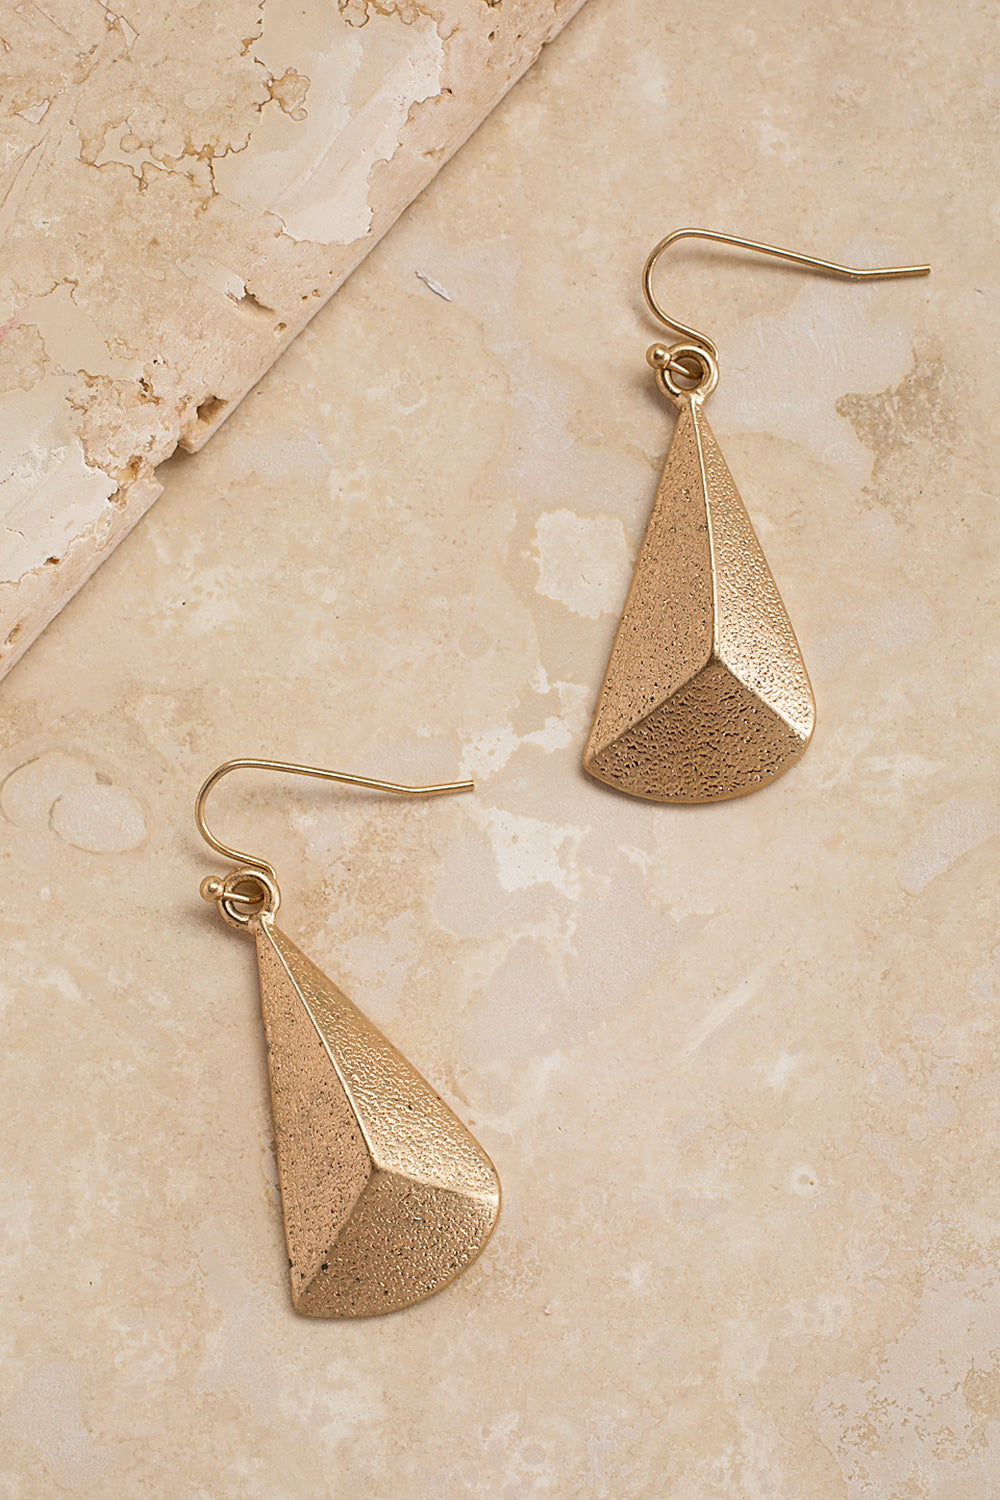 Type 3 3D Earrings